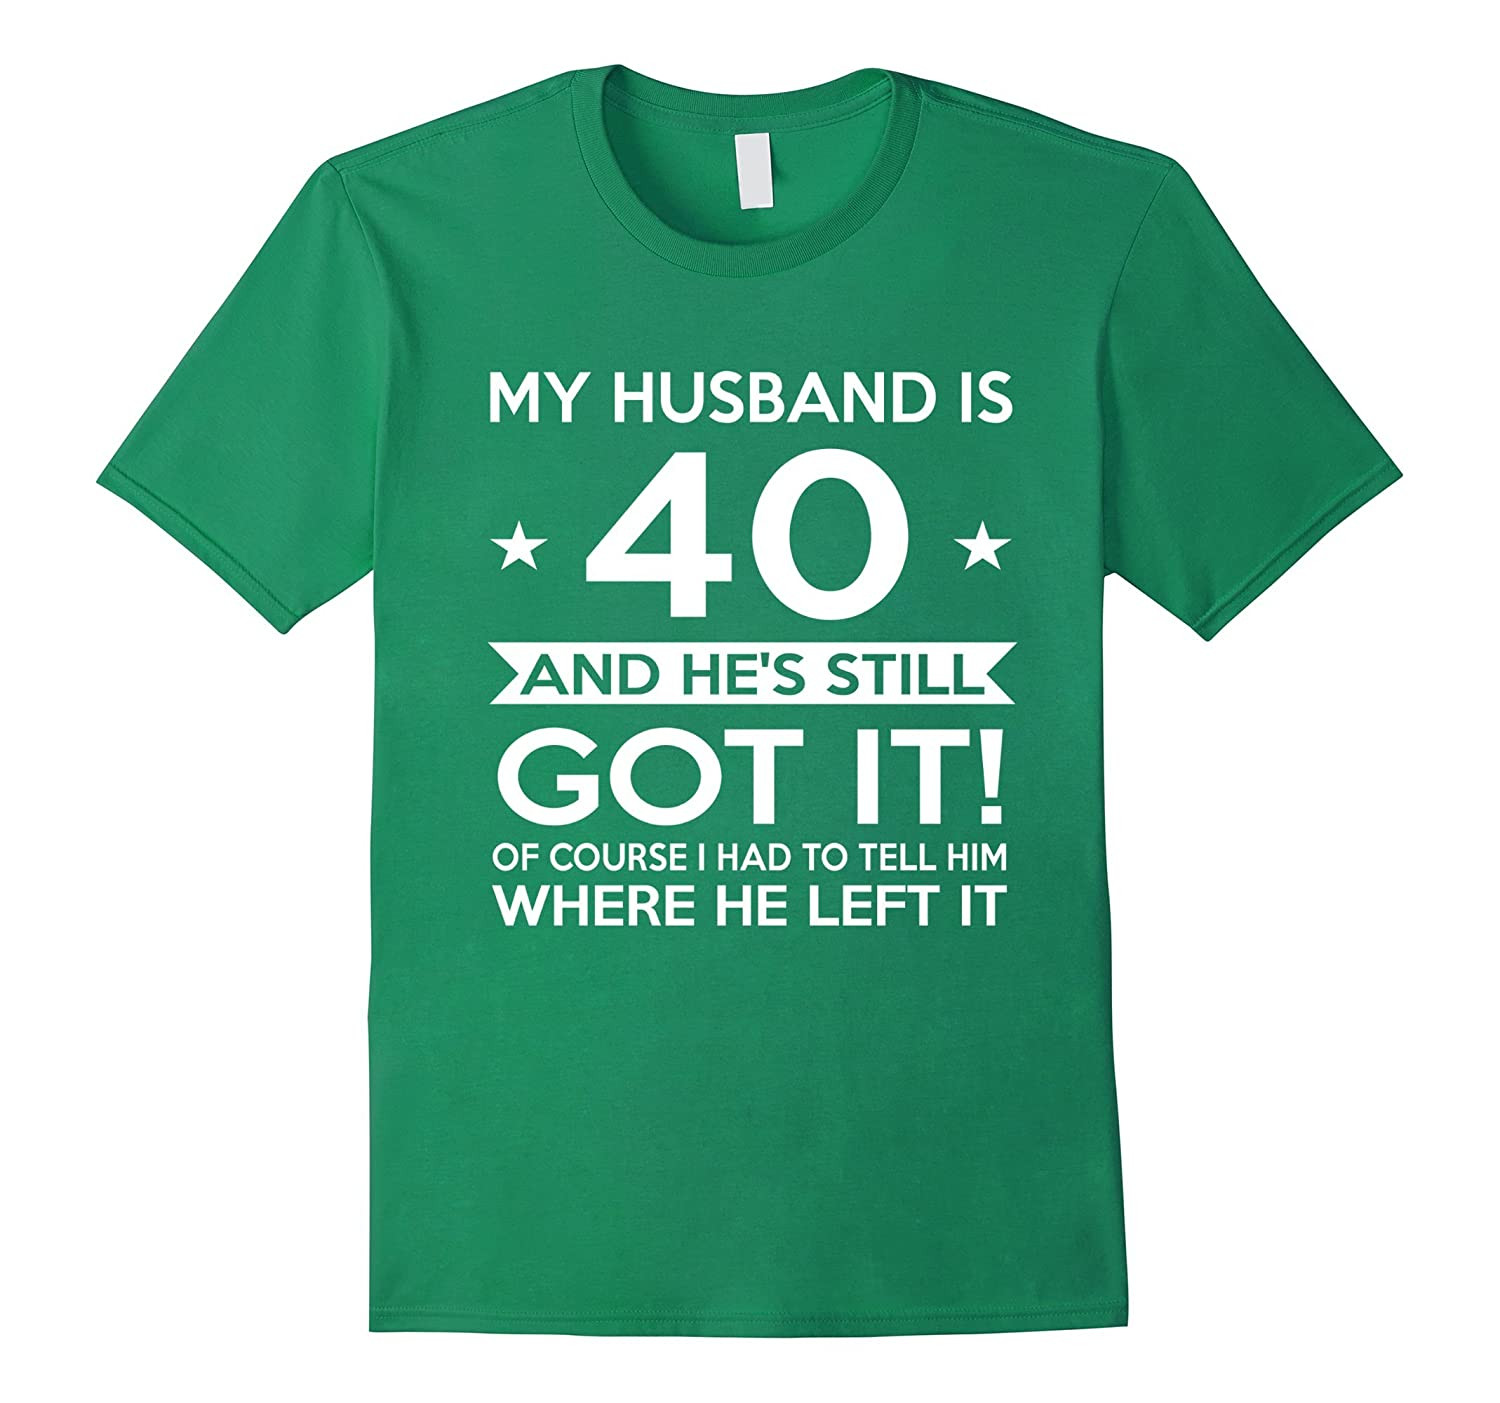 40Th Birthday Gift Ideas For Him  My Husband is 40 40th Birthday Gift Ideas for him CL